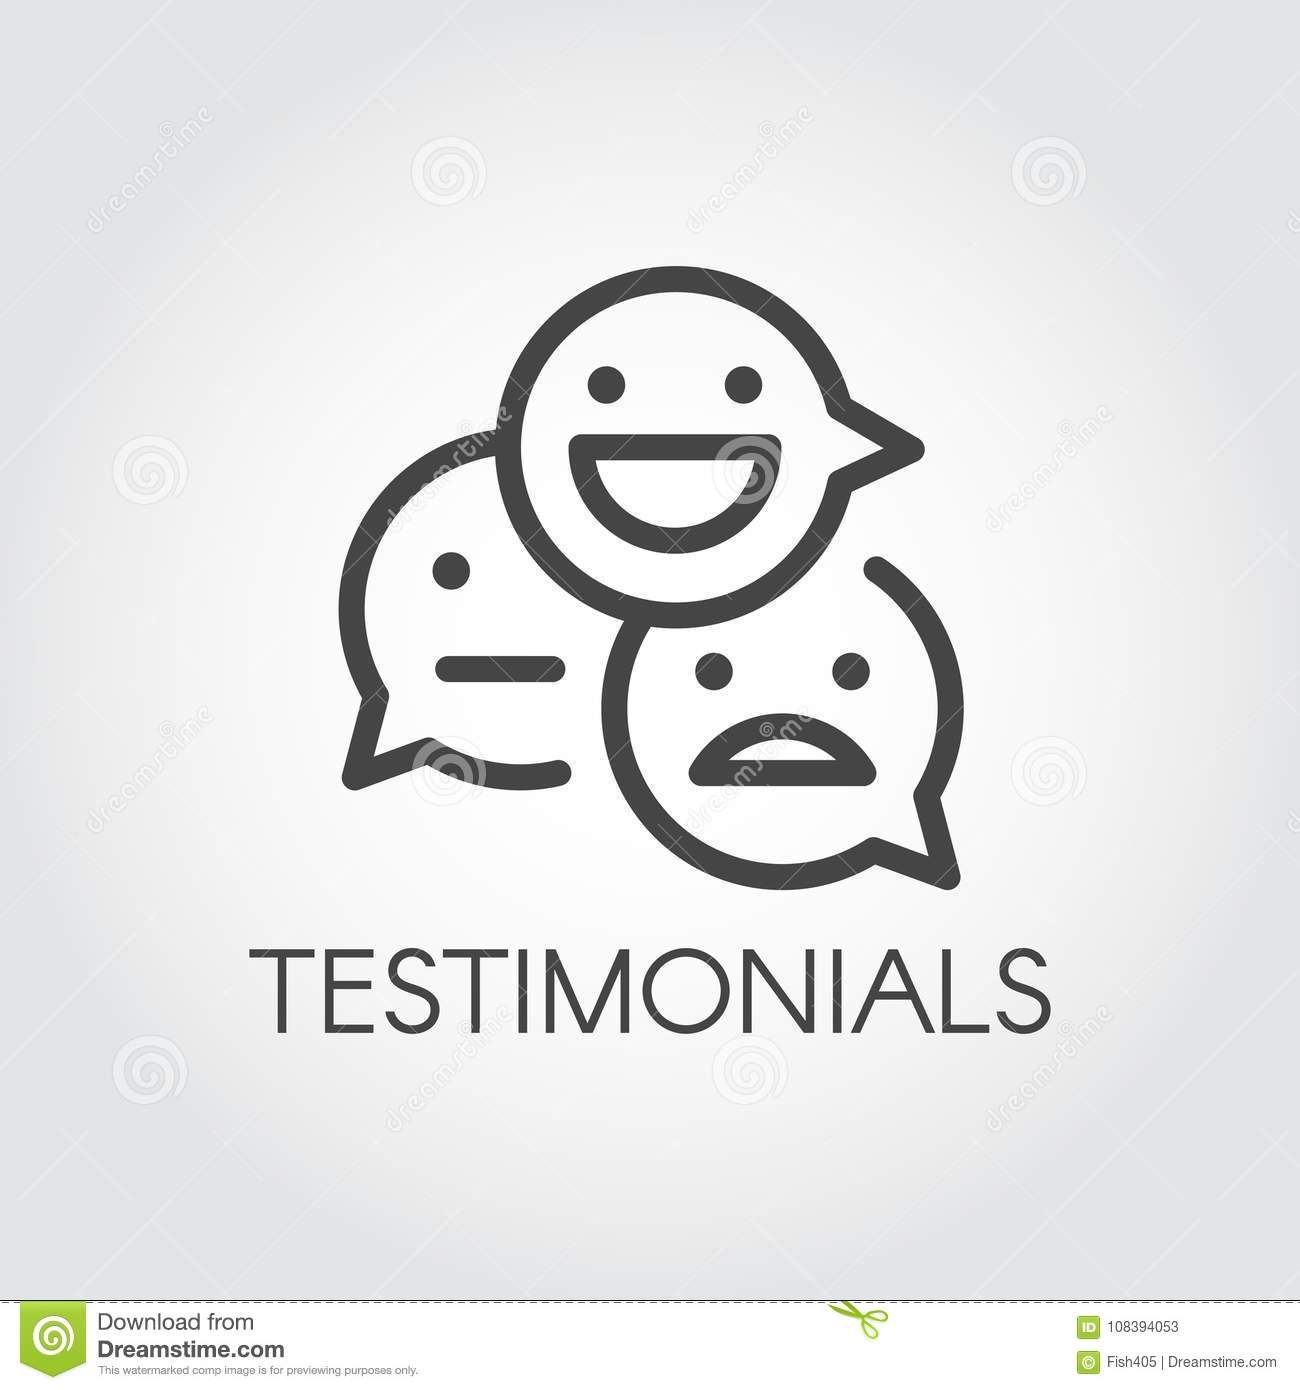 Testimonial line icon symbols for communication on websites forums symbols for communication on websites forums games instant messengers and other platforms buycottarizona Choice Image